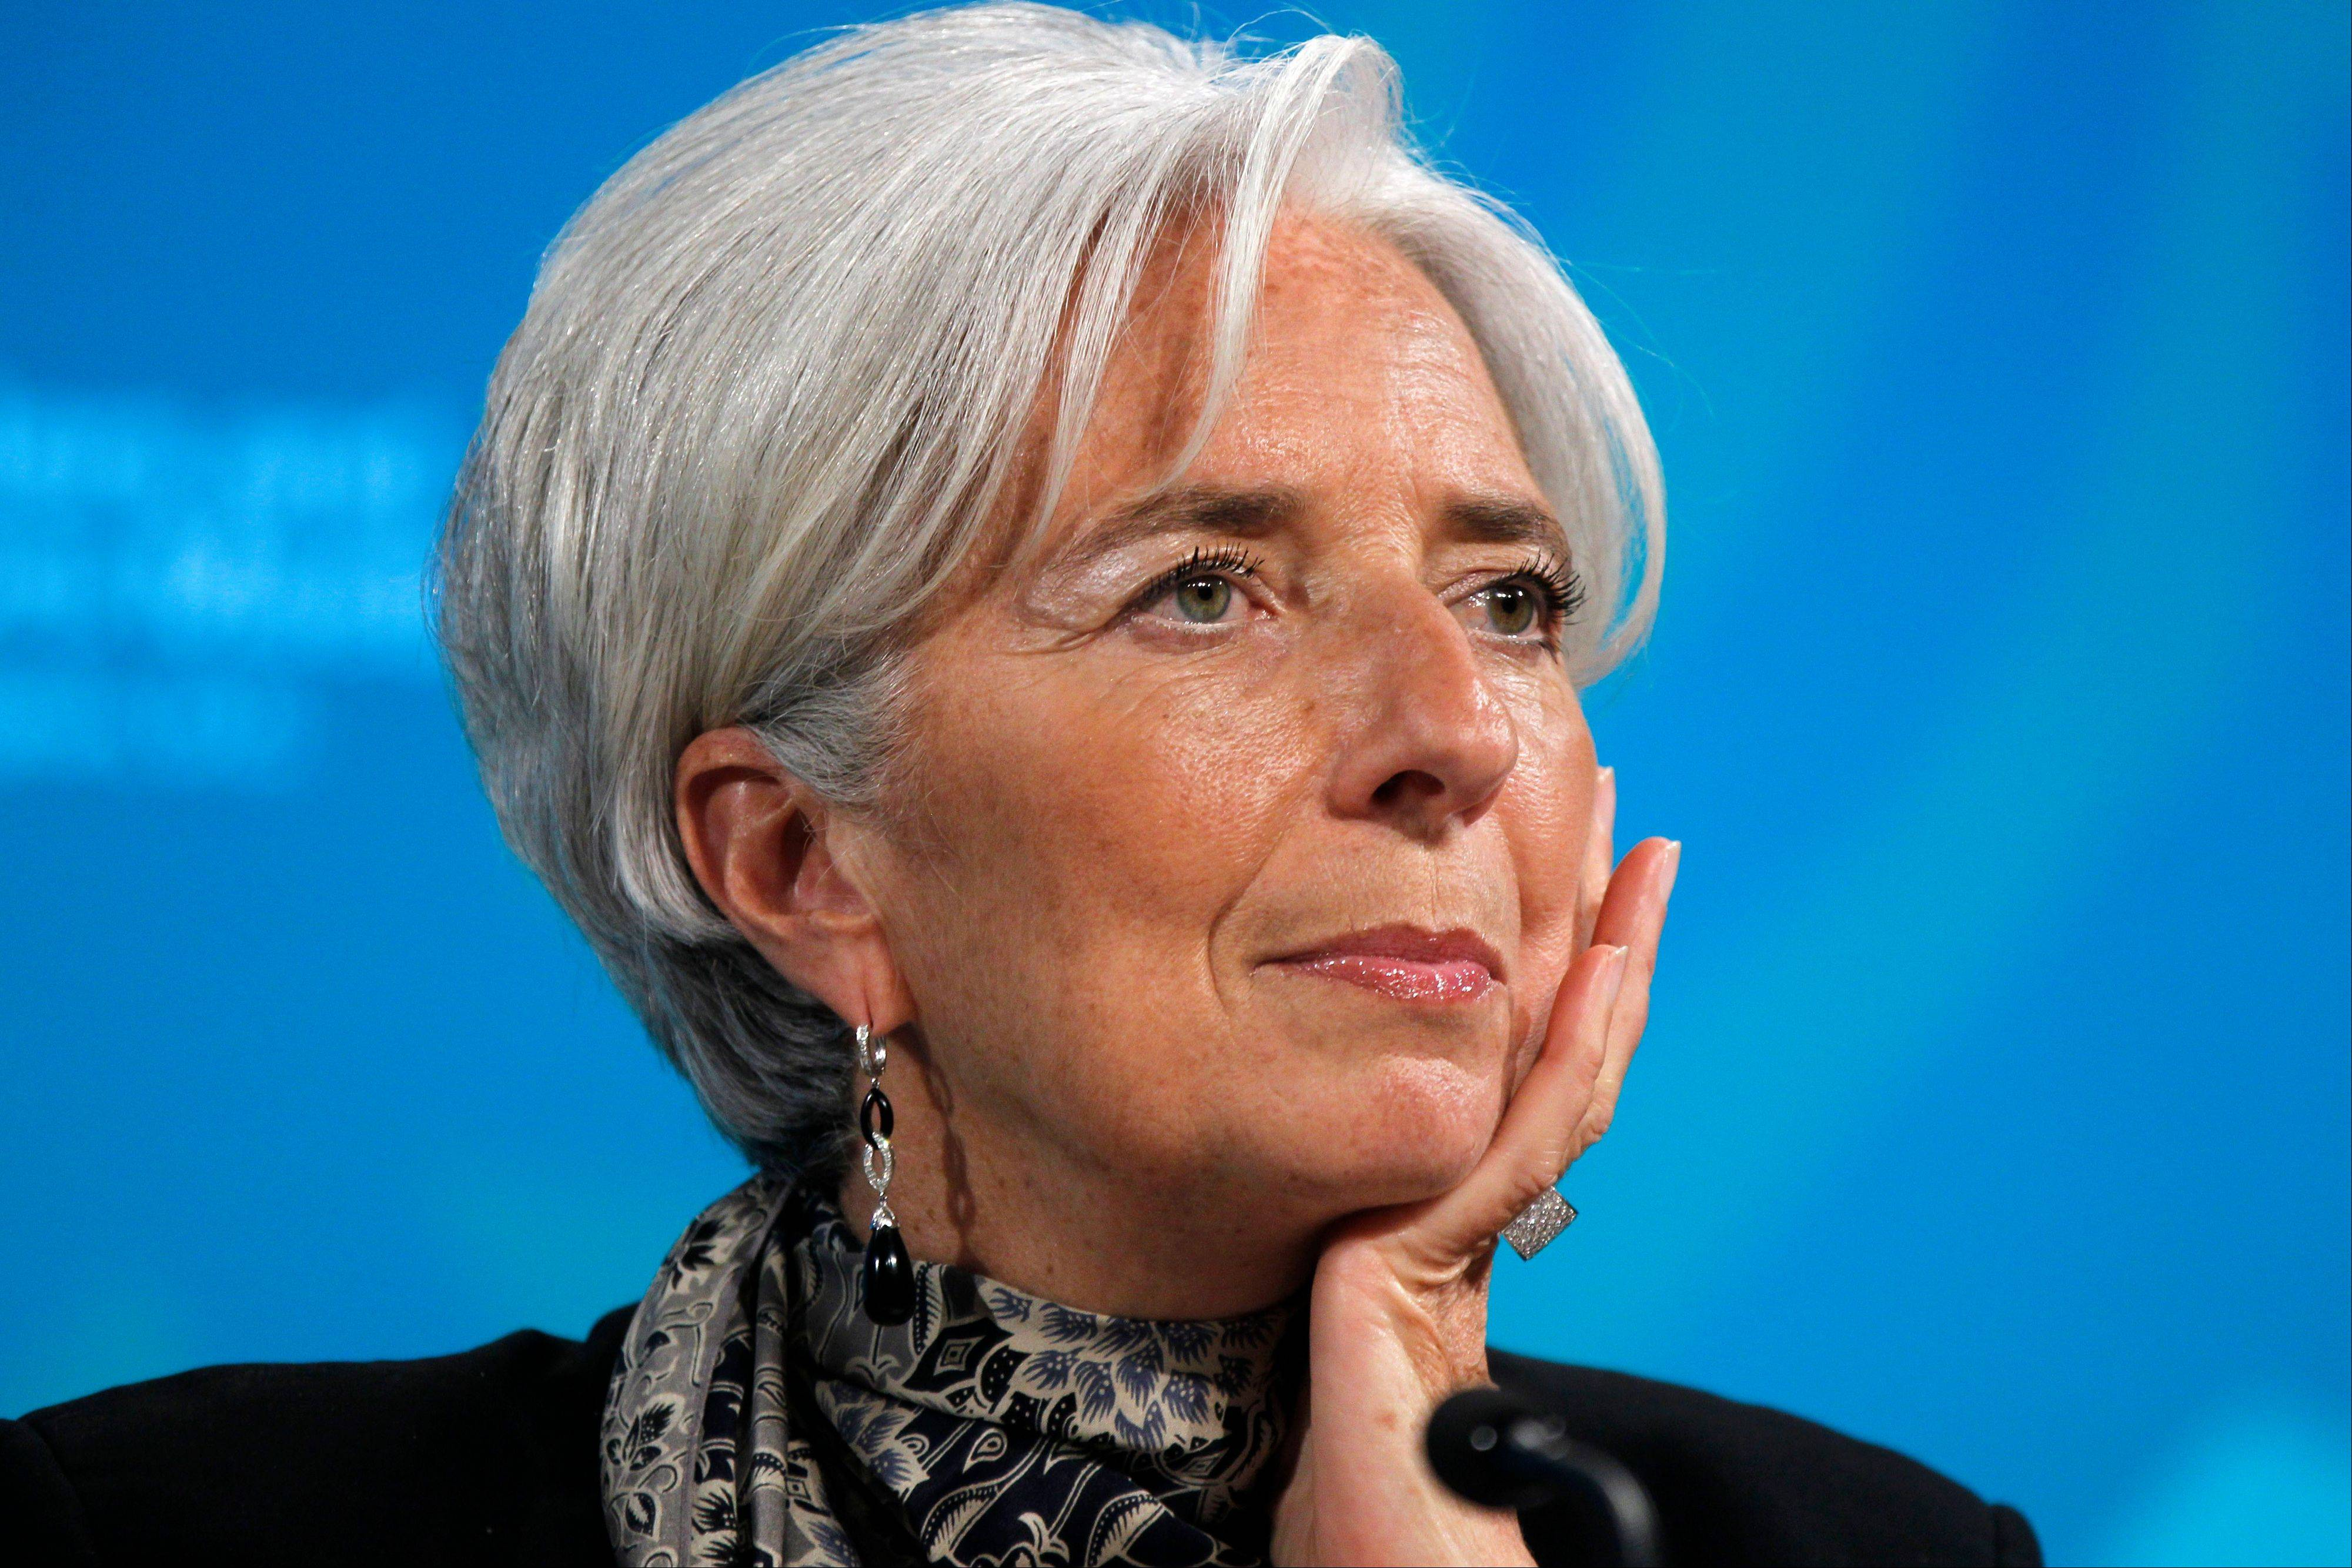 Christine Lagarde, managing director of the International Monetary Fund, helped engineer its largest and perhaps most controversial program -- the rescue of the euro zone.